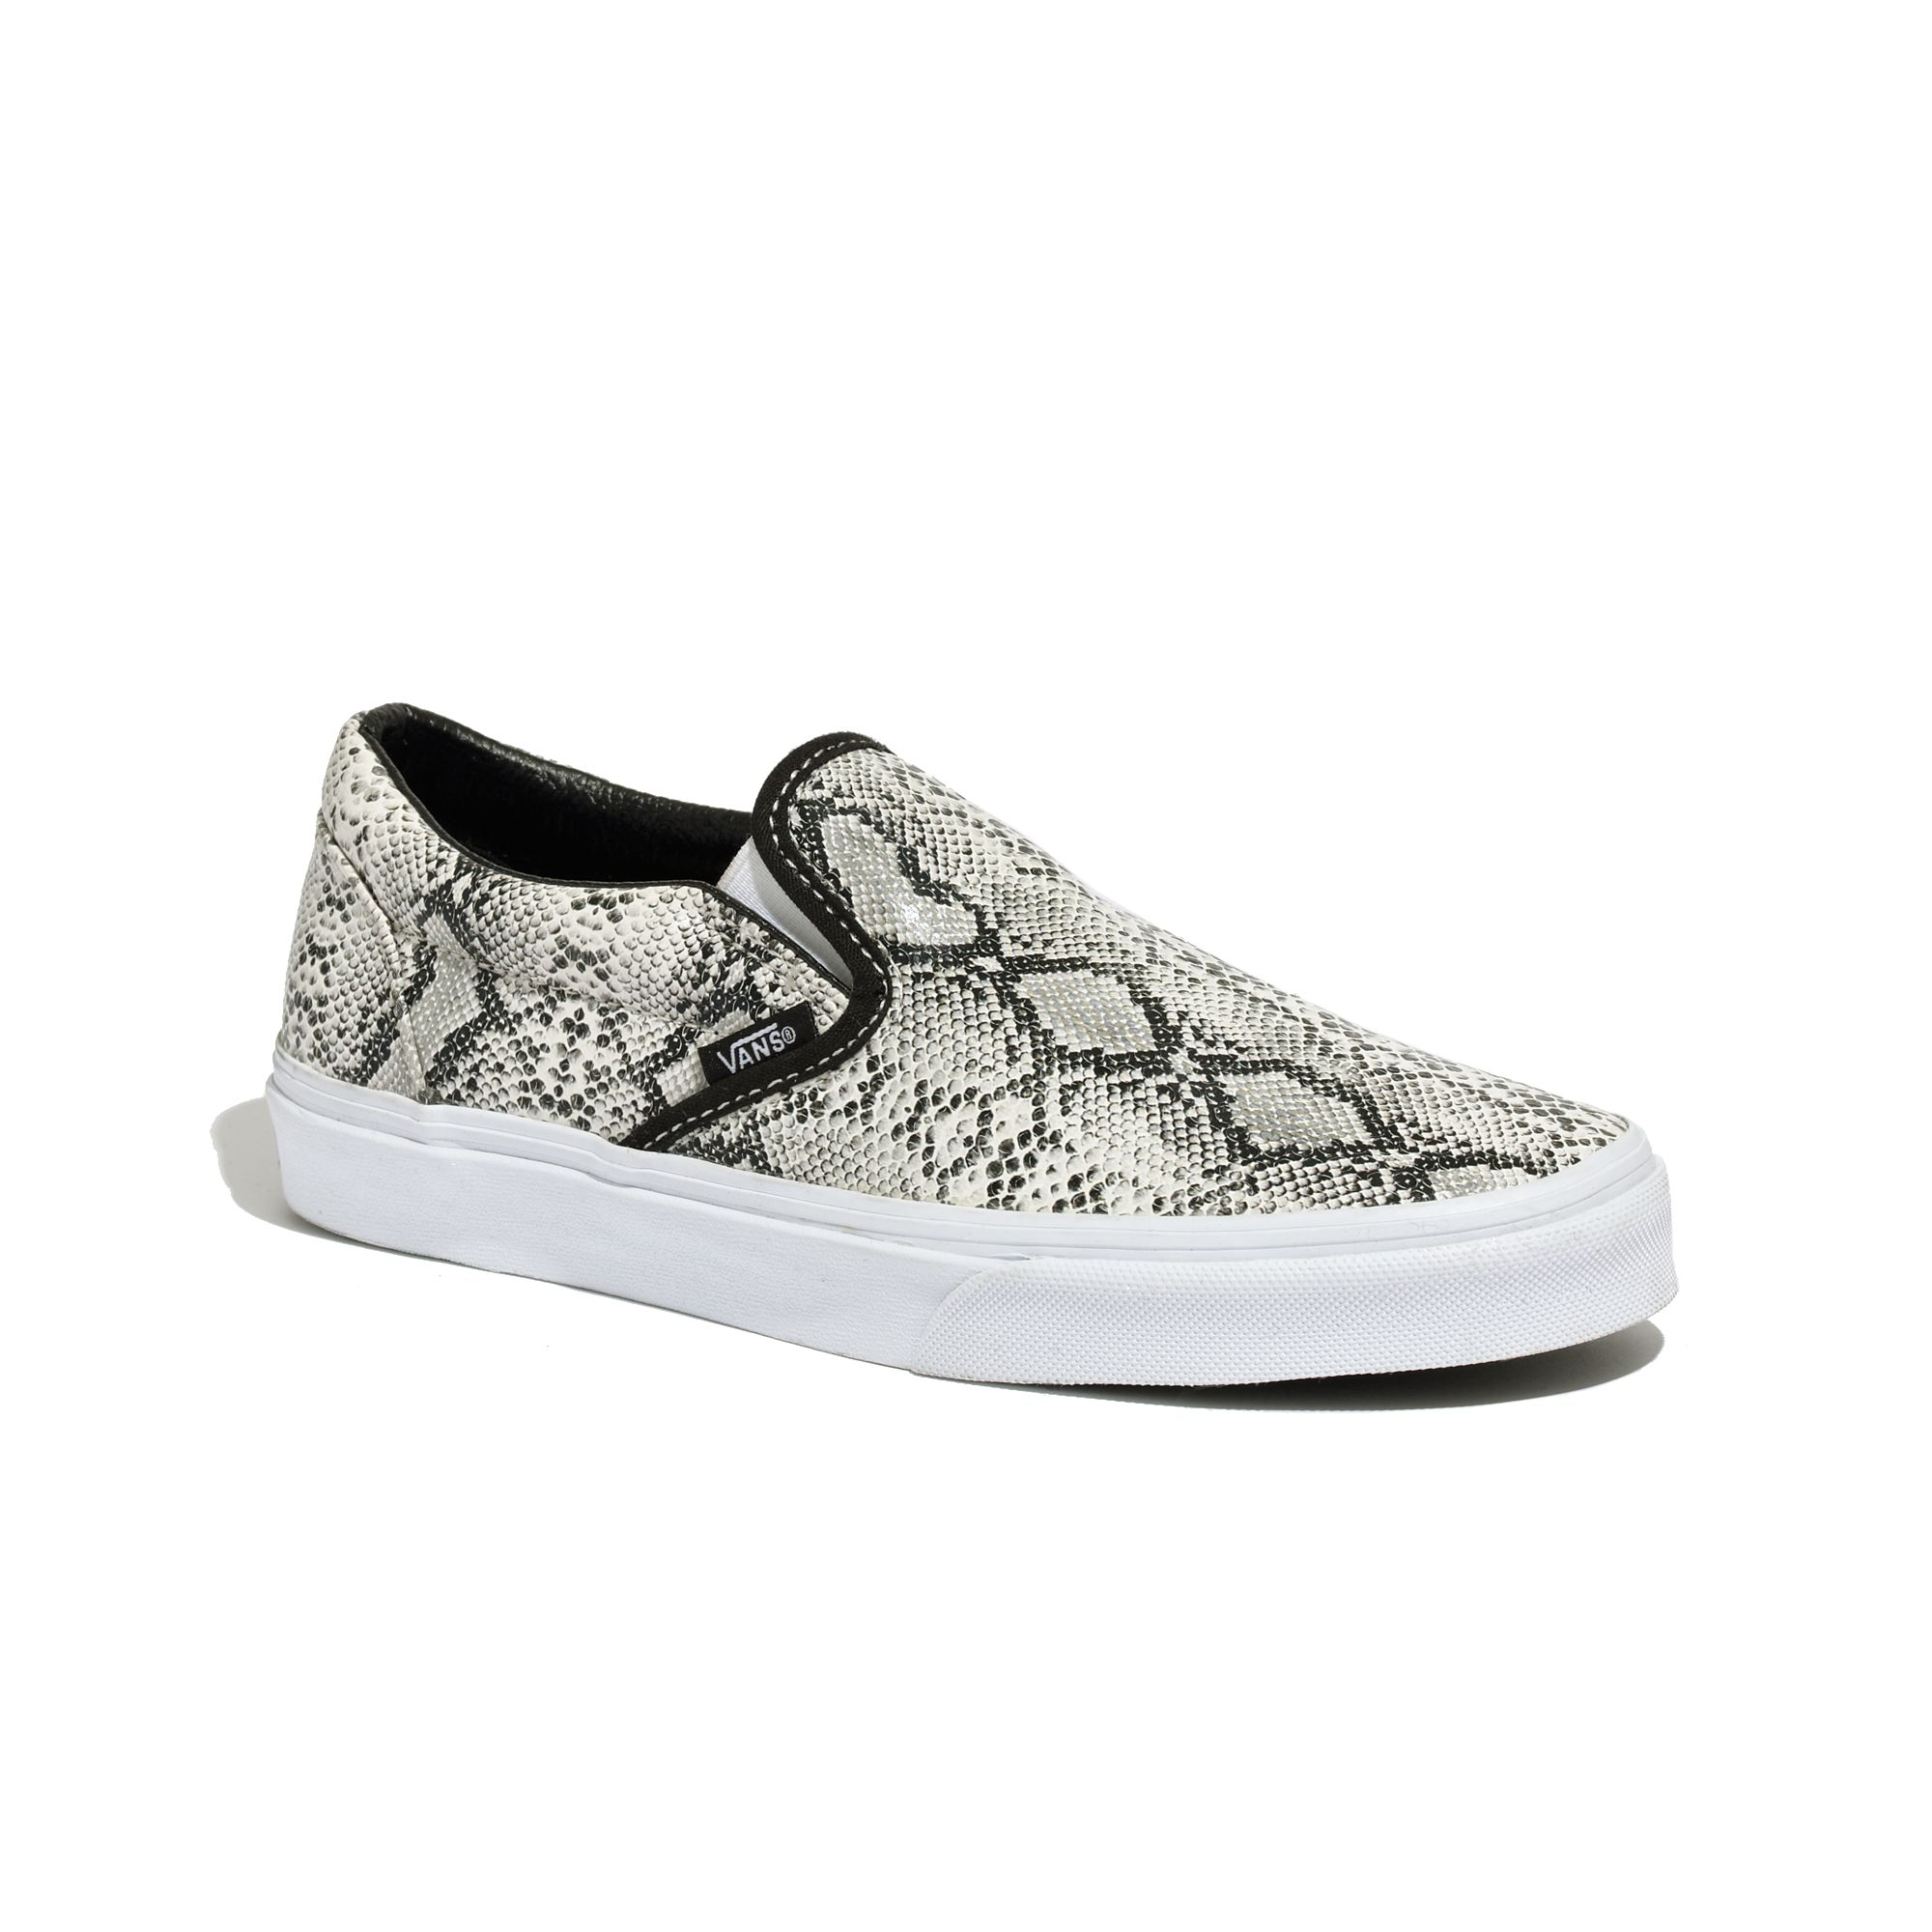 8f76a5e5ad0 Lyst - Madewell Vans® Classic Slip-ons In Snake Print